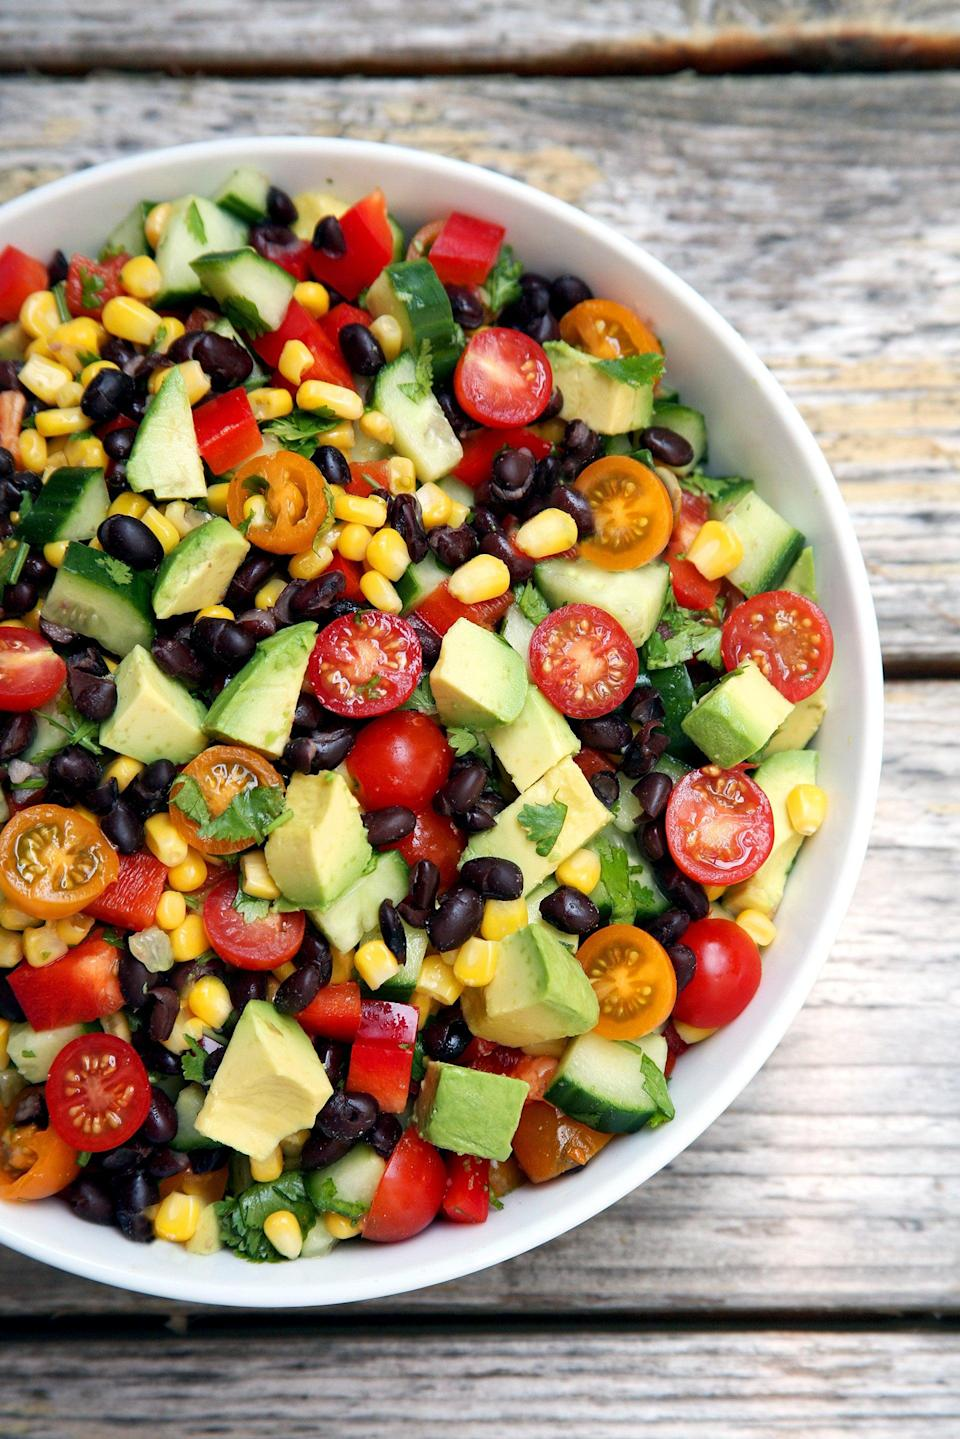 """<p>For a lighter lunch, you could eat this black bean and corn salad as is or eat it with a pita, tortilla chips, or extra protein. It tastes great cold, so we suggest making a big portion and munching on it during the week.</p> <p><strong>Get the recipe:</strong> <a href=""""https://www.popsugar.com/fitness/Cucumber-Black-Bean-Corn-Tomato-Avocado-Salad-37842951"""" class=""""link rapid-noclick-resp"""" rel=""""nofollow noopener"""" target=""""_blank"""" data-ylk=""""slk:cucumber corn salad"""">cucumber corn salad</a></p>"""